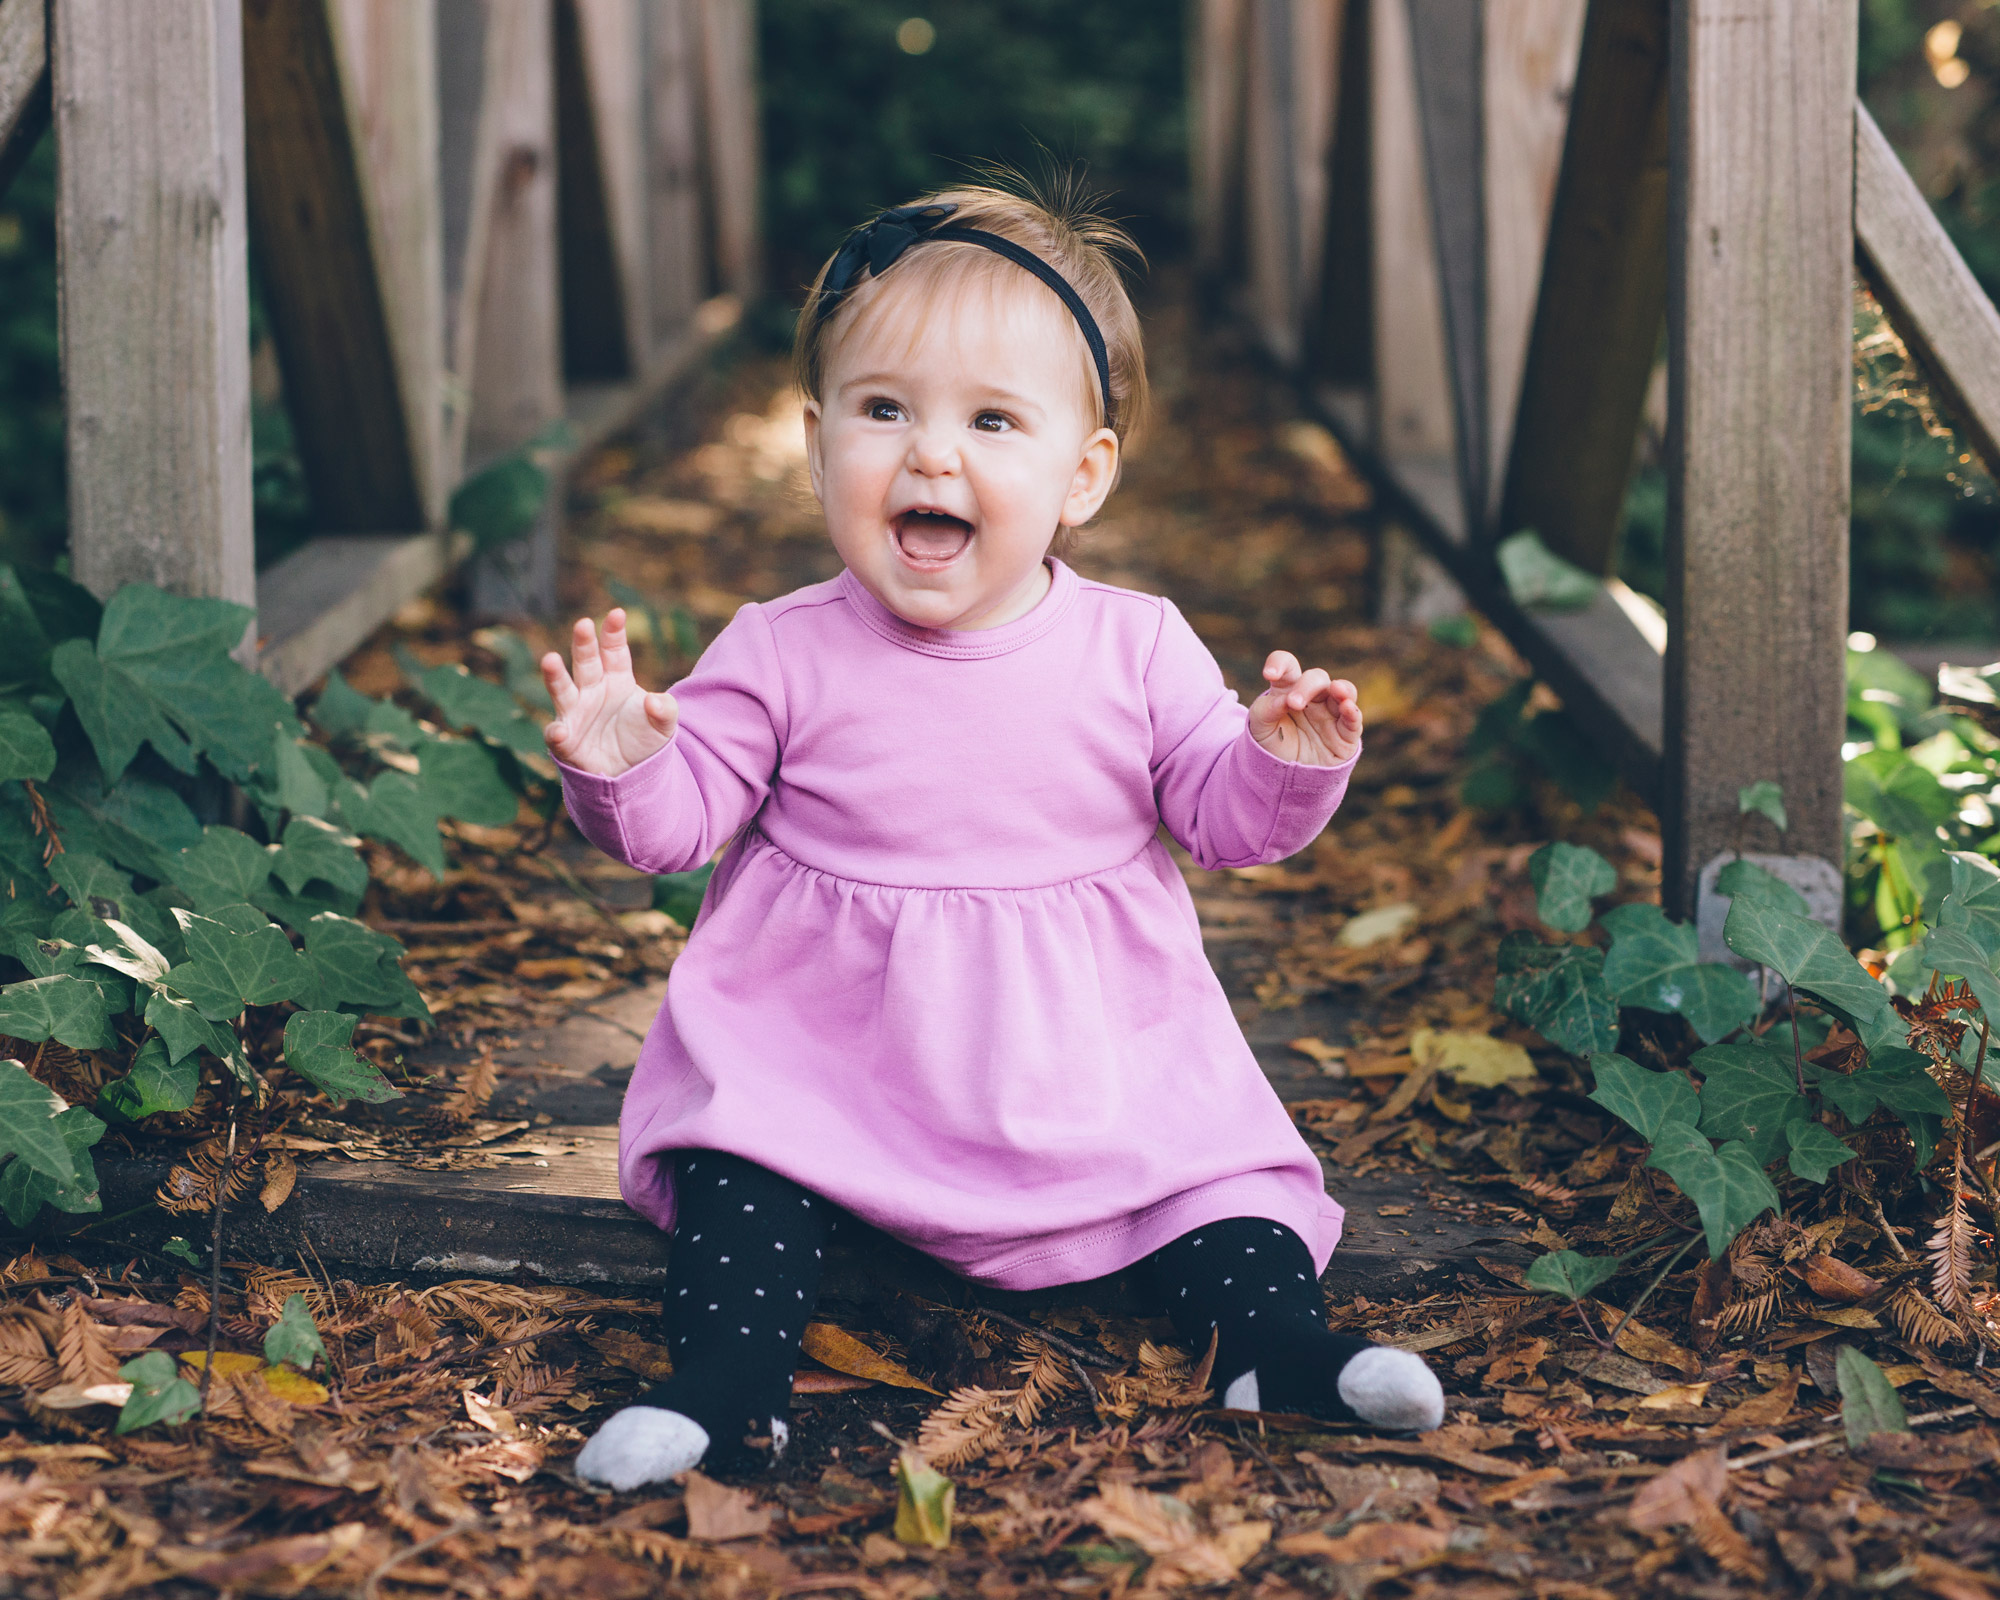 baby-girl-sitting-and-smiling-on-leaves.jpg